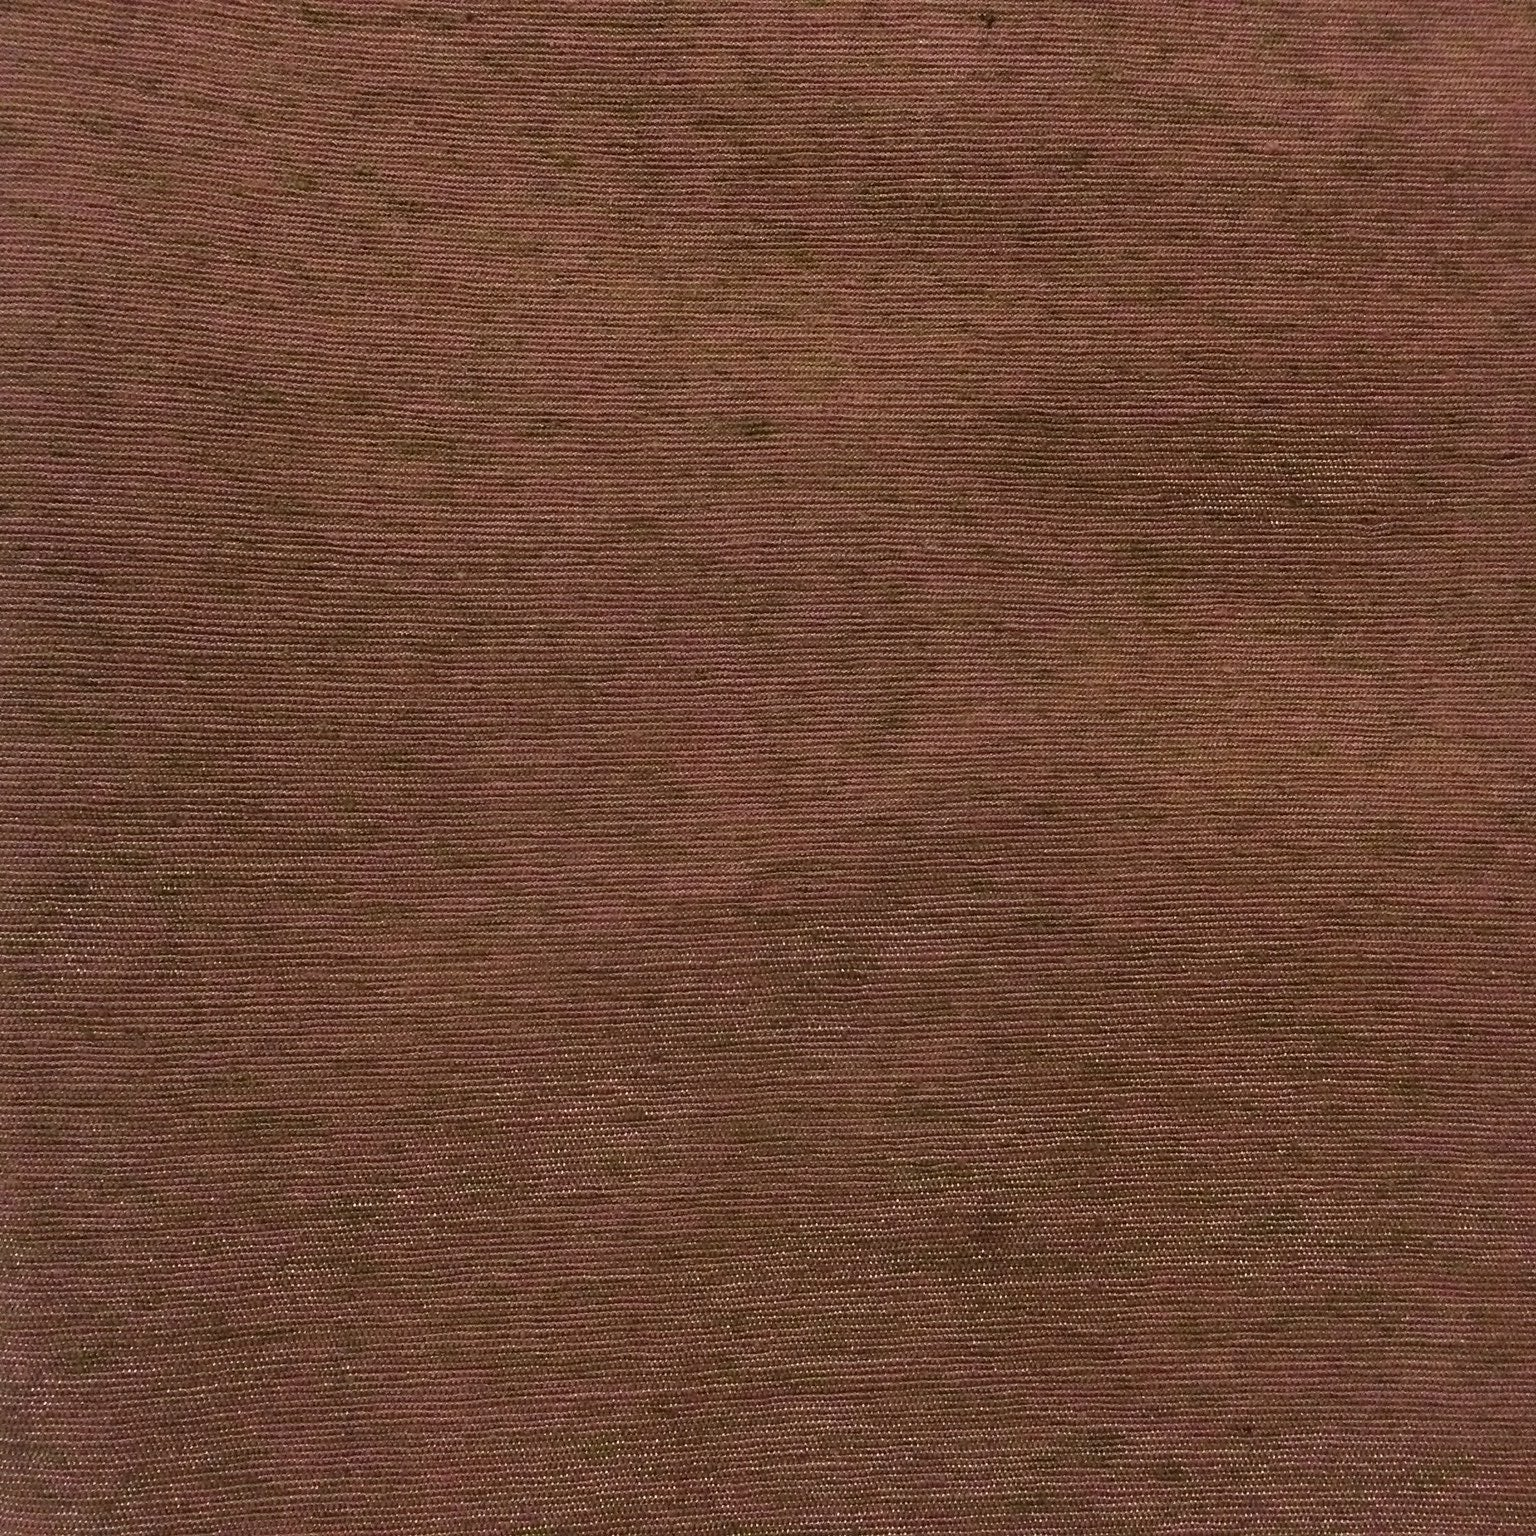 Fabric by the Yard - Mauve Faille